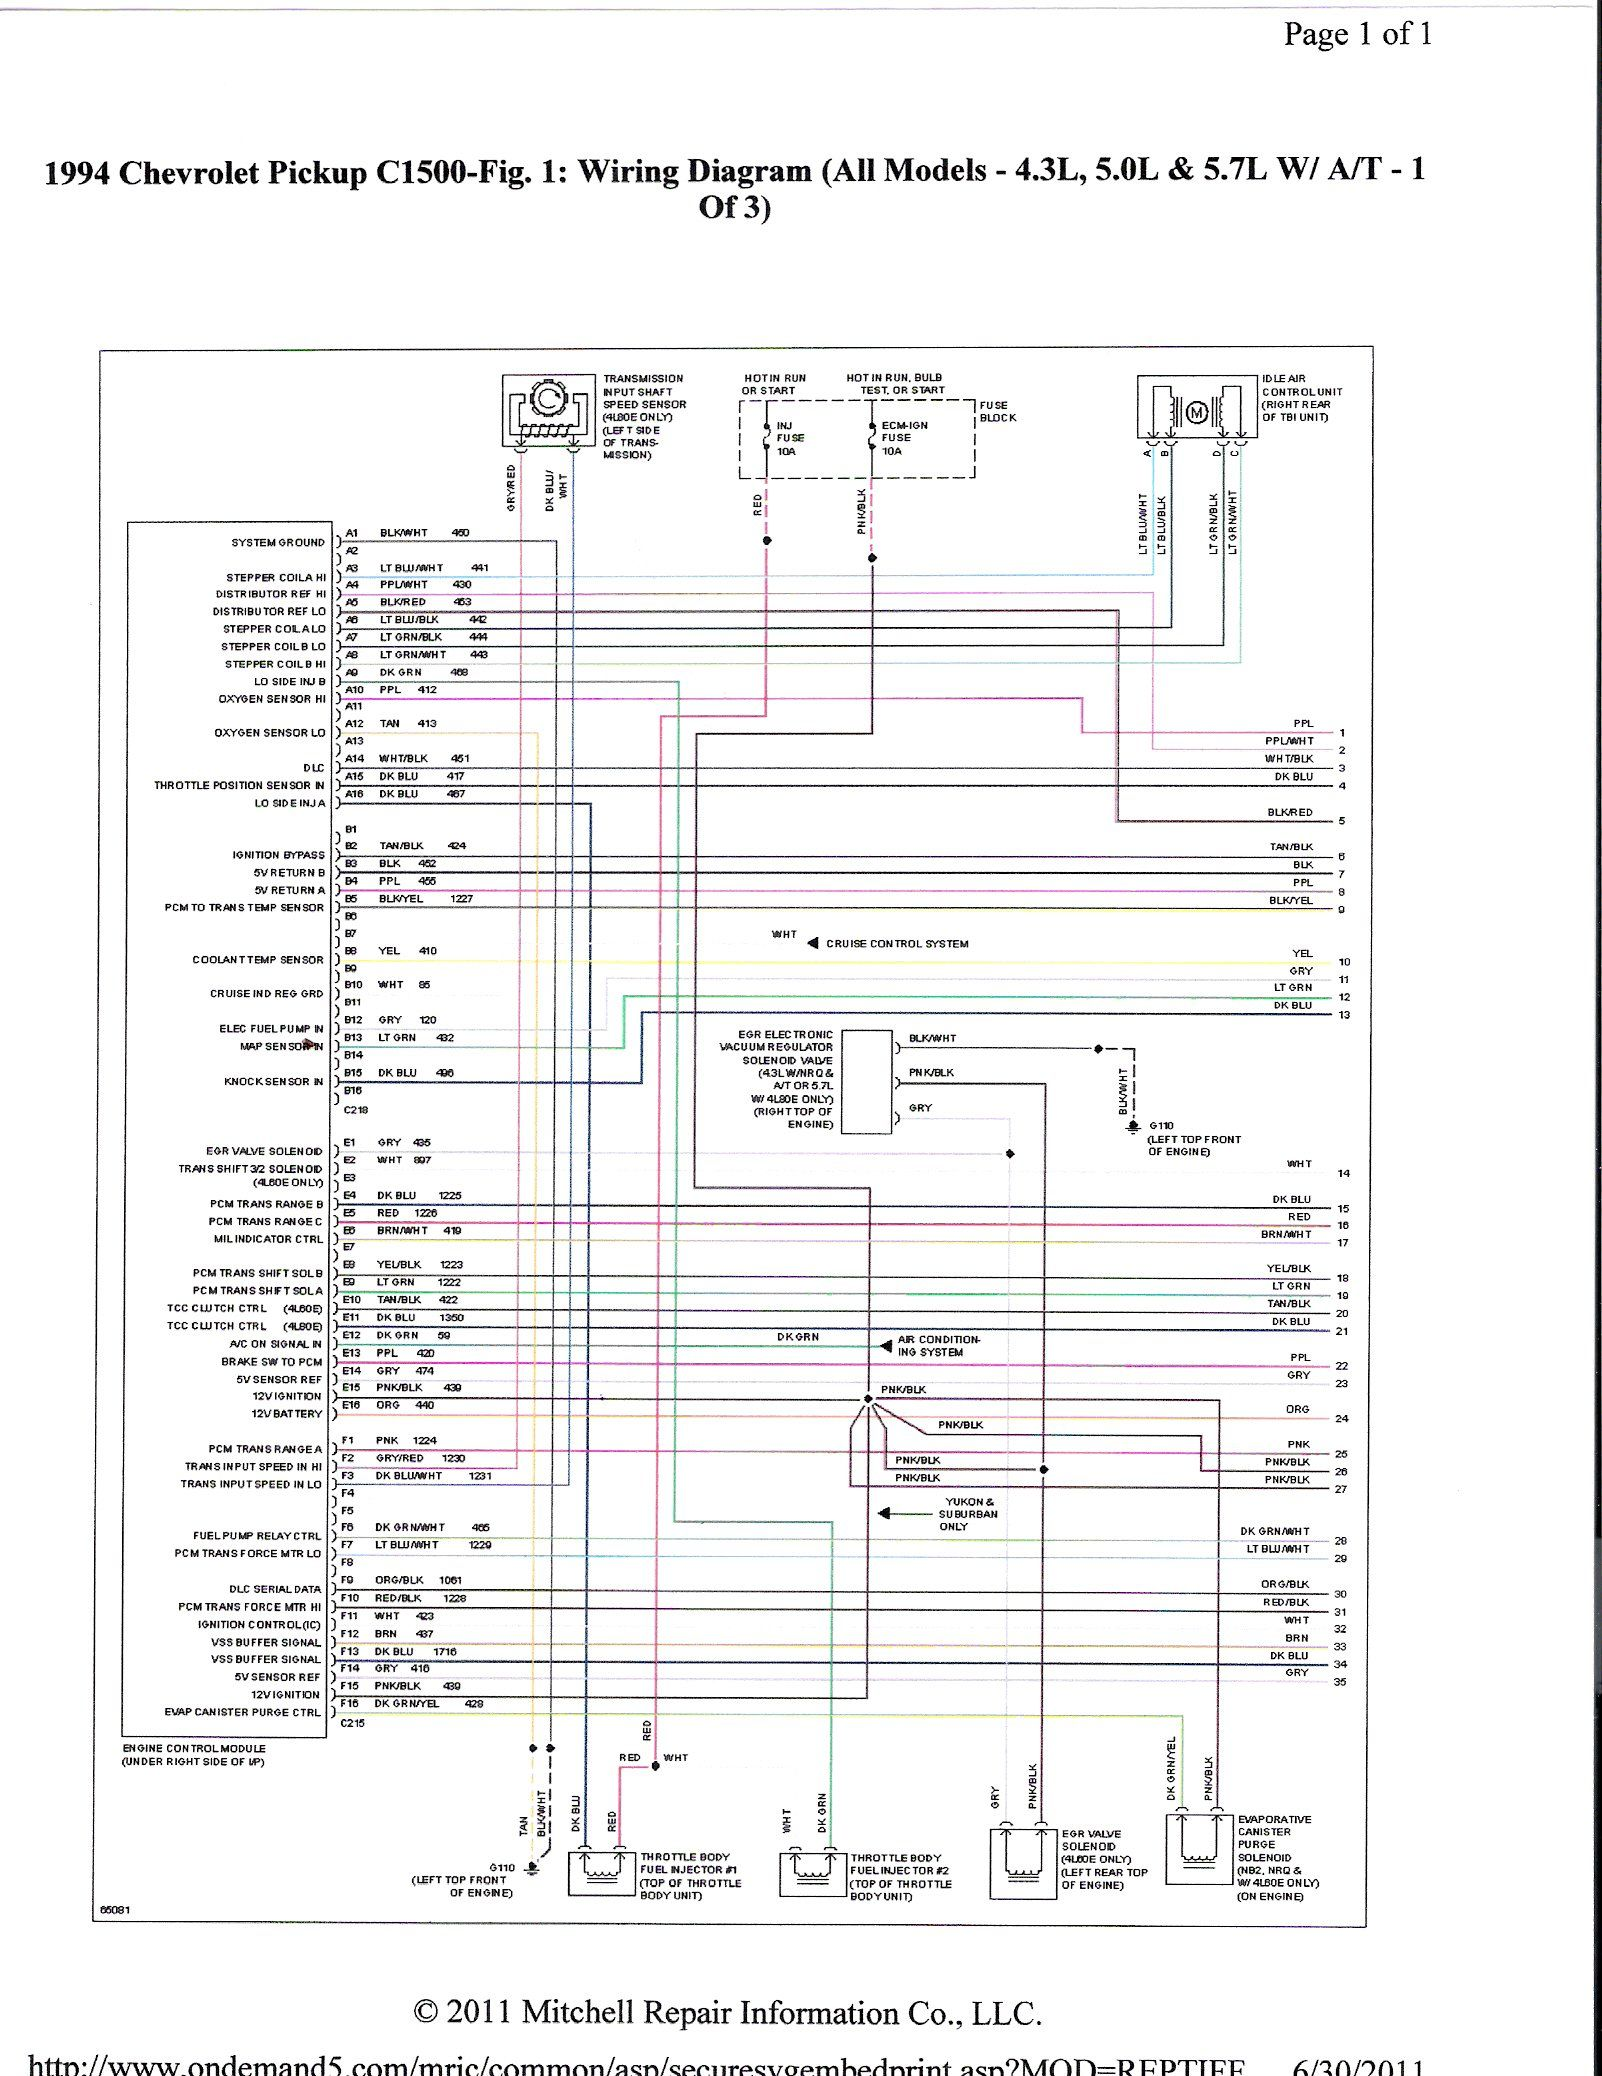 small resolution of 1994 c1500 wiring diagram wiring diagram forward 1994 chevrolet c1500 wiring diagram 1994 c1500 wiring diagram